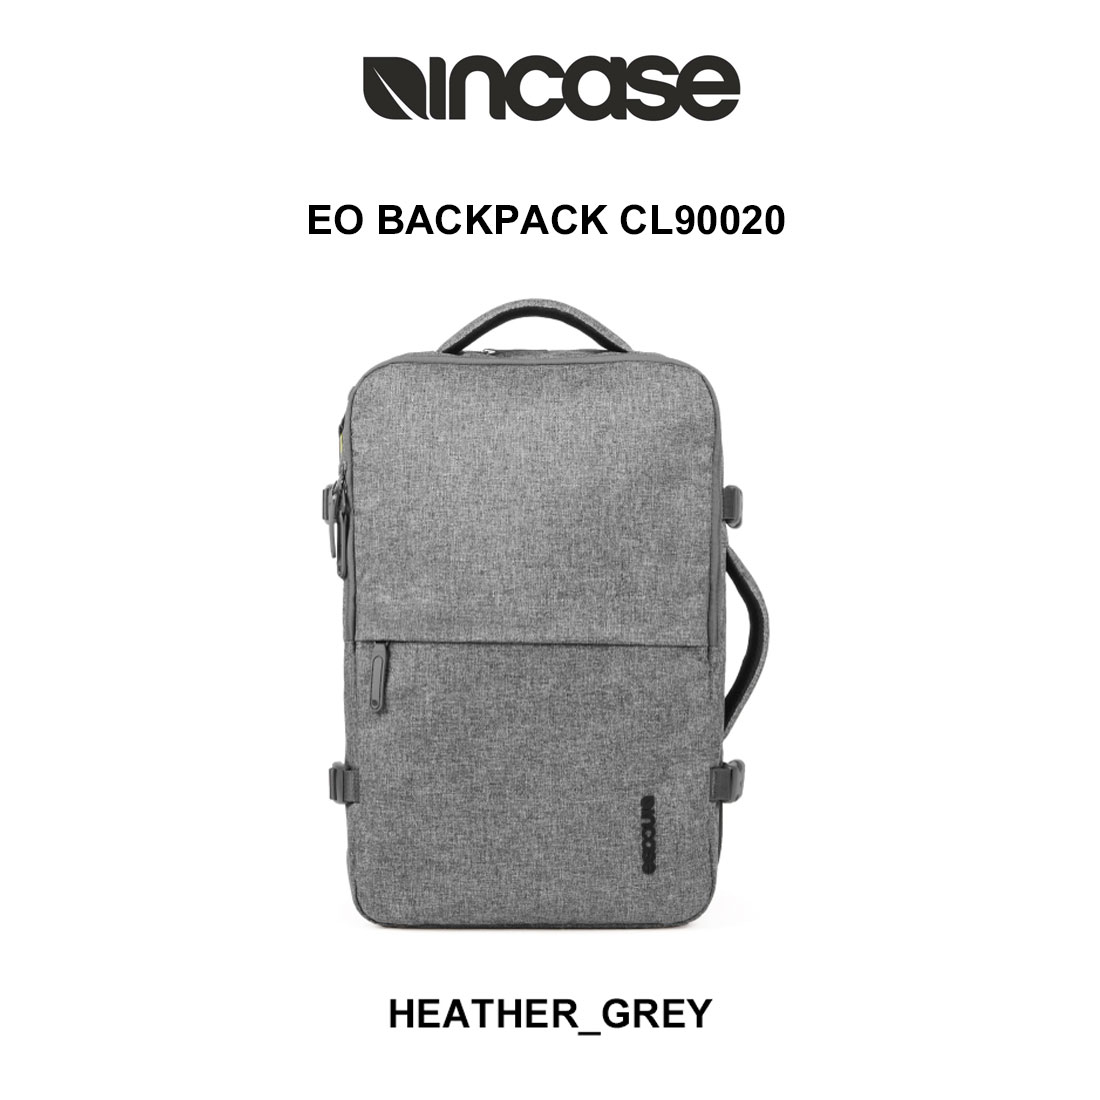 Incase(インケース)トラベル 旅行 バックパック リュック EO BACKPACK CL90020 Heather Gray